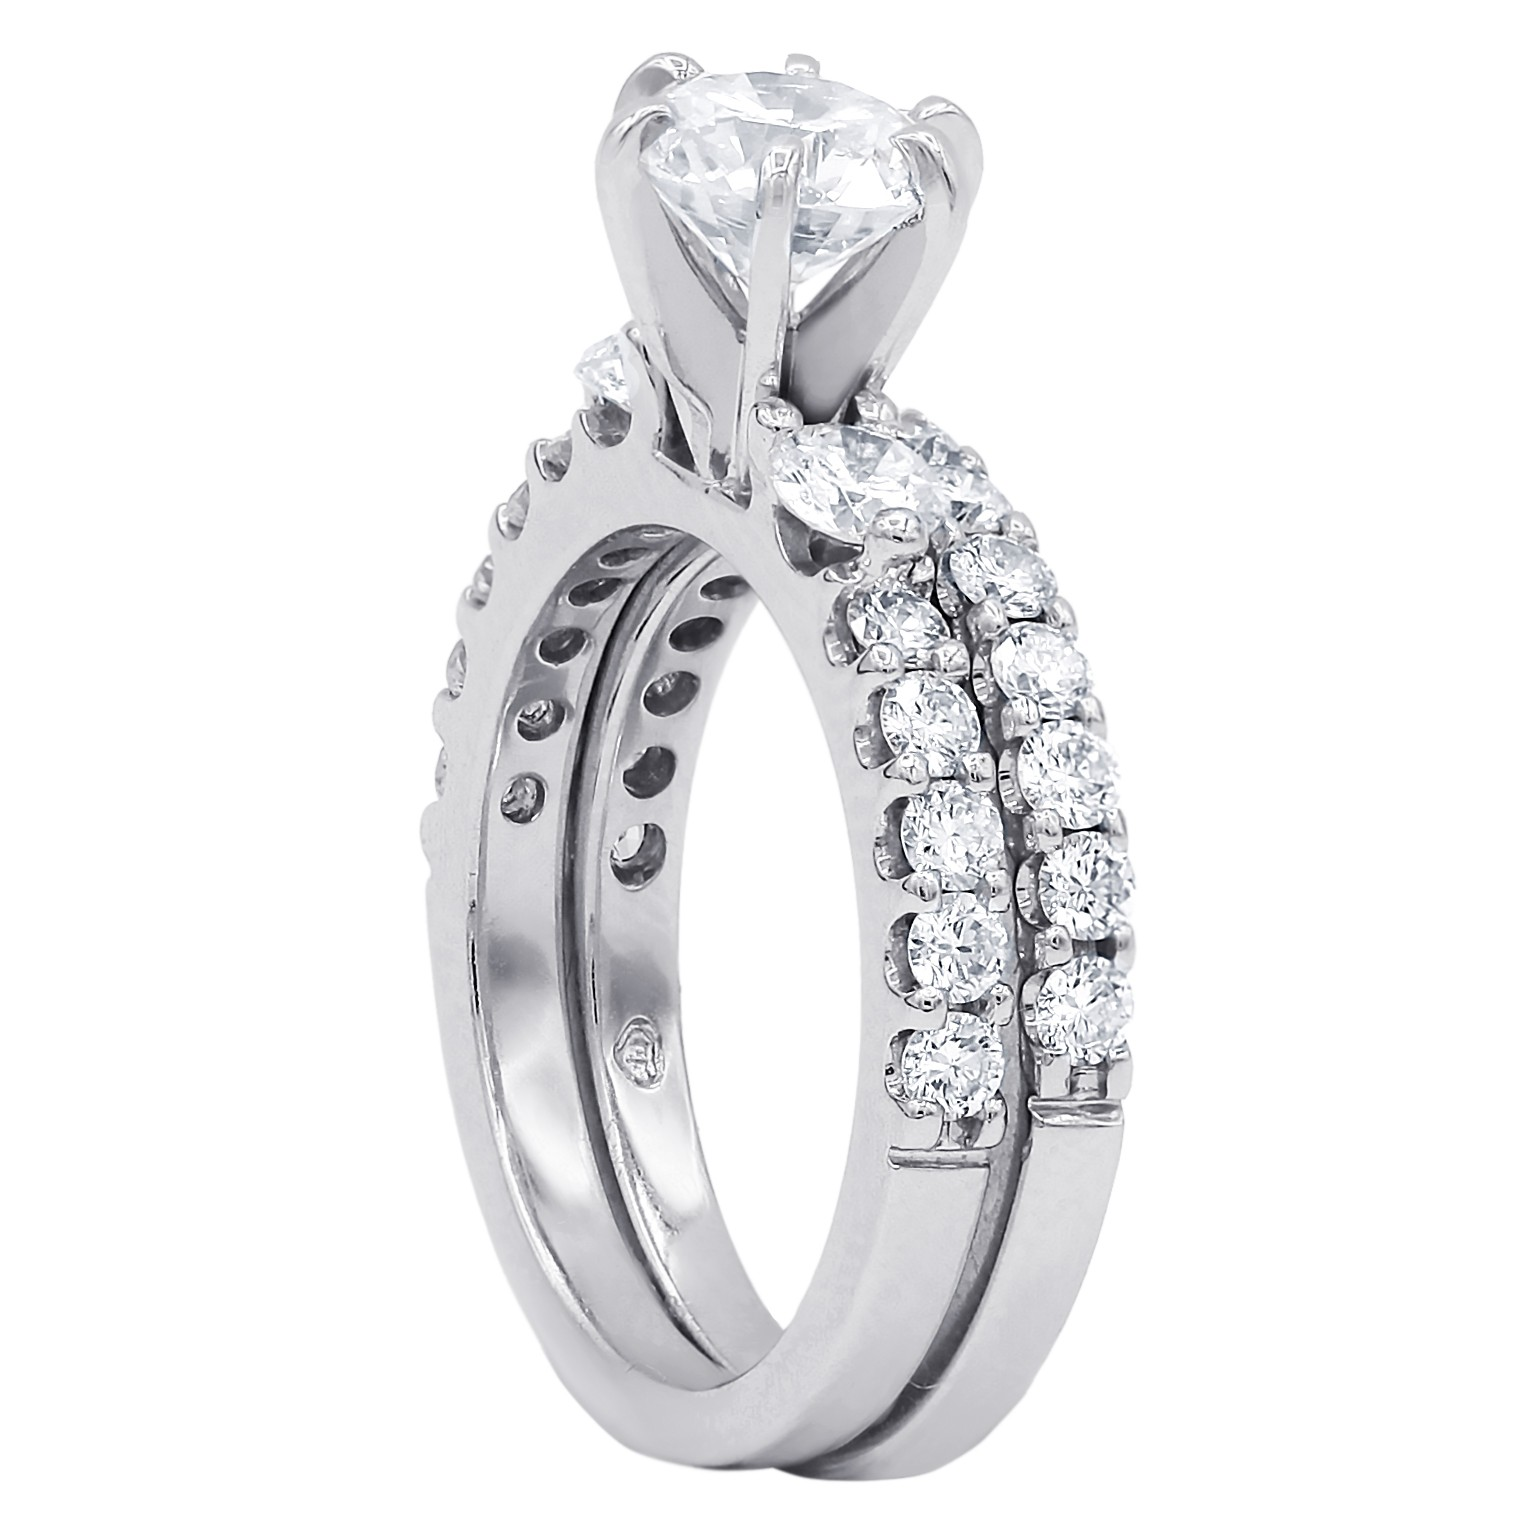 2.03 cts Engagement and wedding ring set